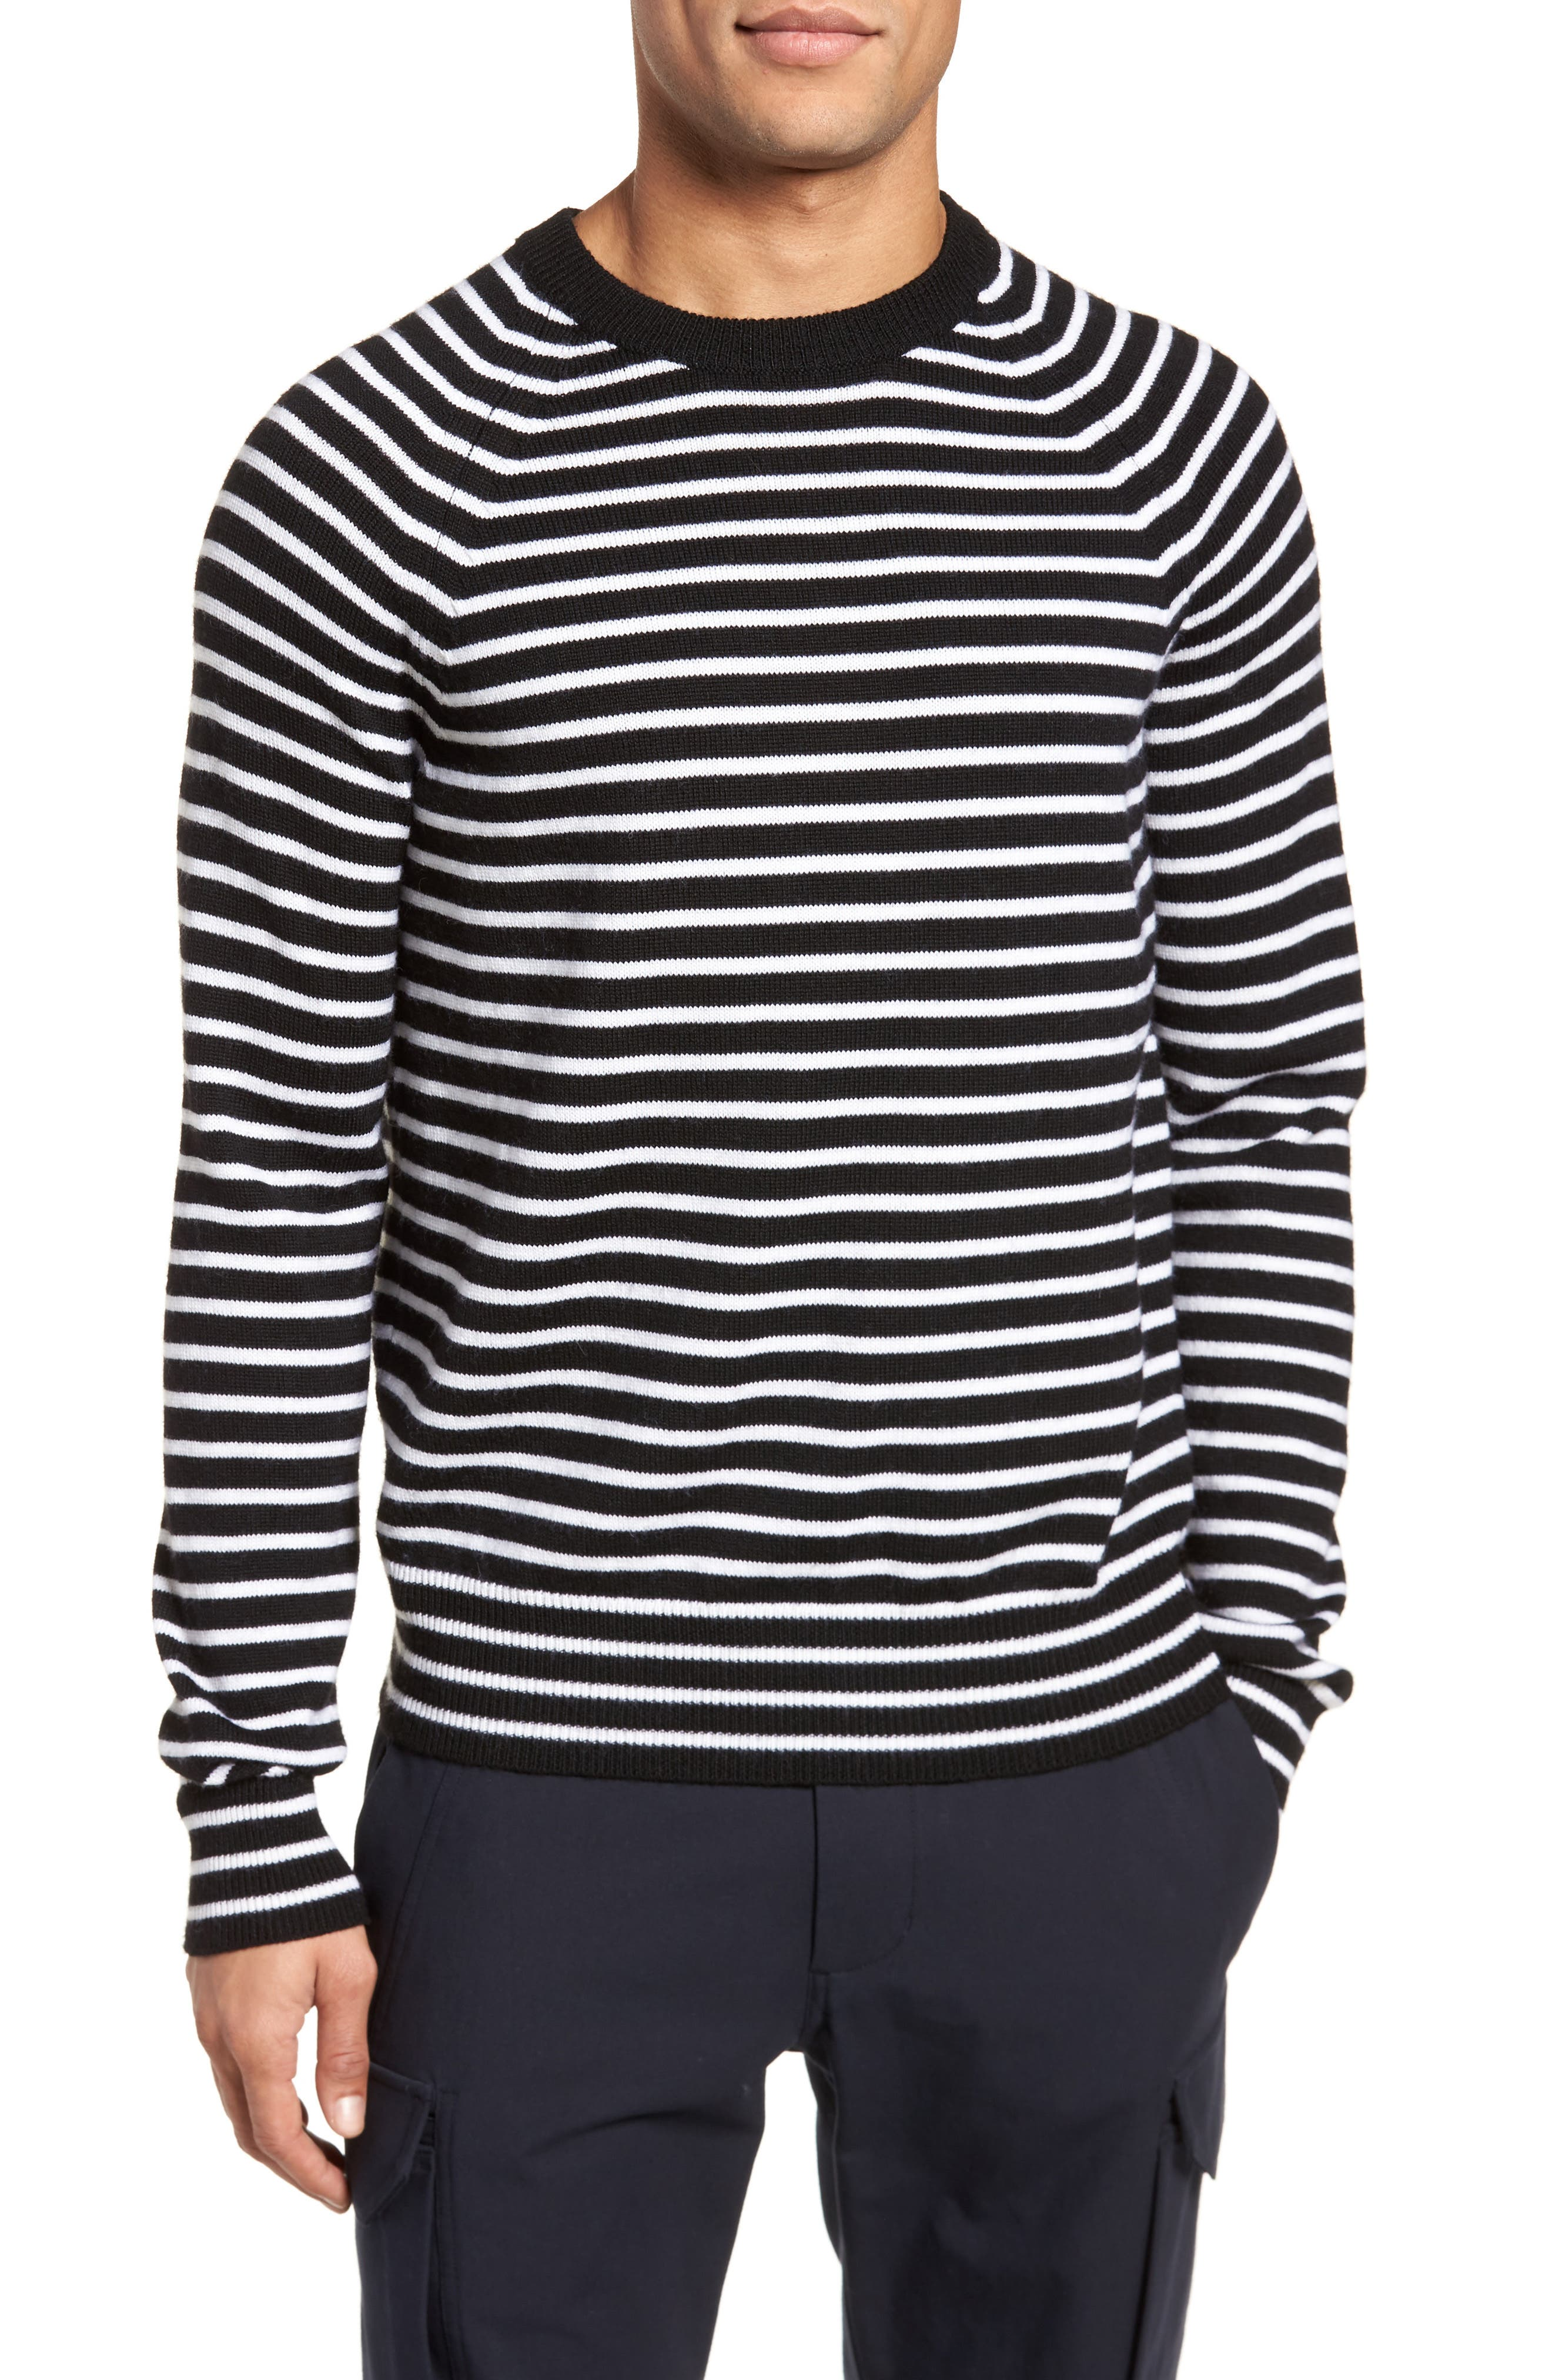 Regular Fit Striped Wool Sweater,                             Main thumbnail 1, color,                             Black/ Stormy White